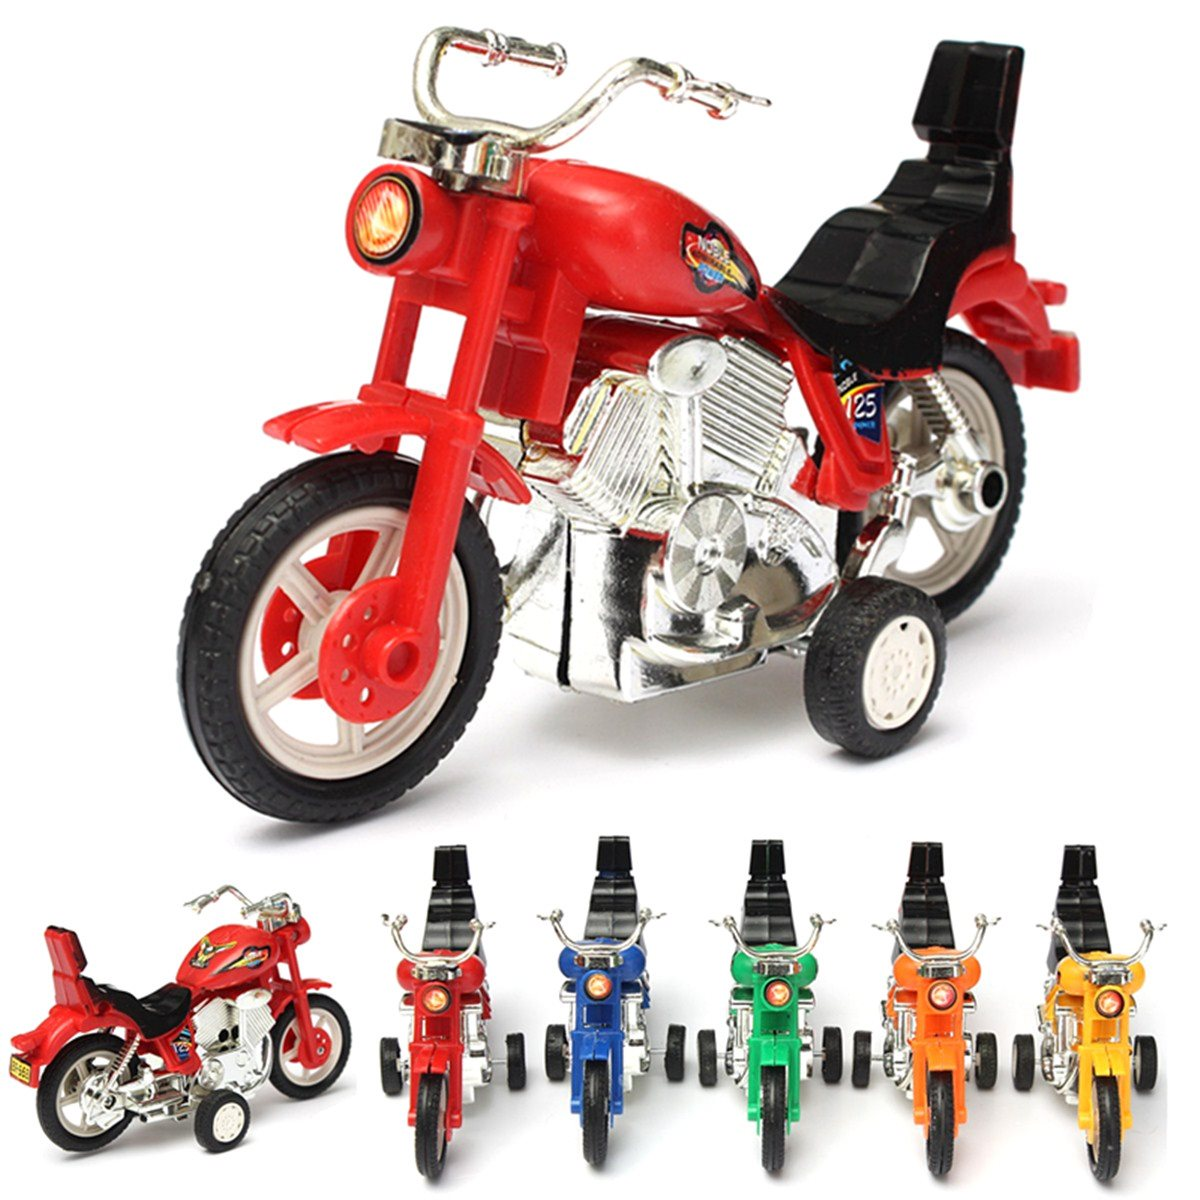 Poplular Funny Mini Baby Auto Motorcycle Toy Model Educational Play Vehicles Gift Electromobile Craft Children Kids Favorite DIY(China (Mainland))